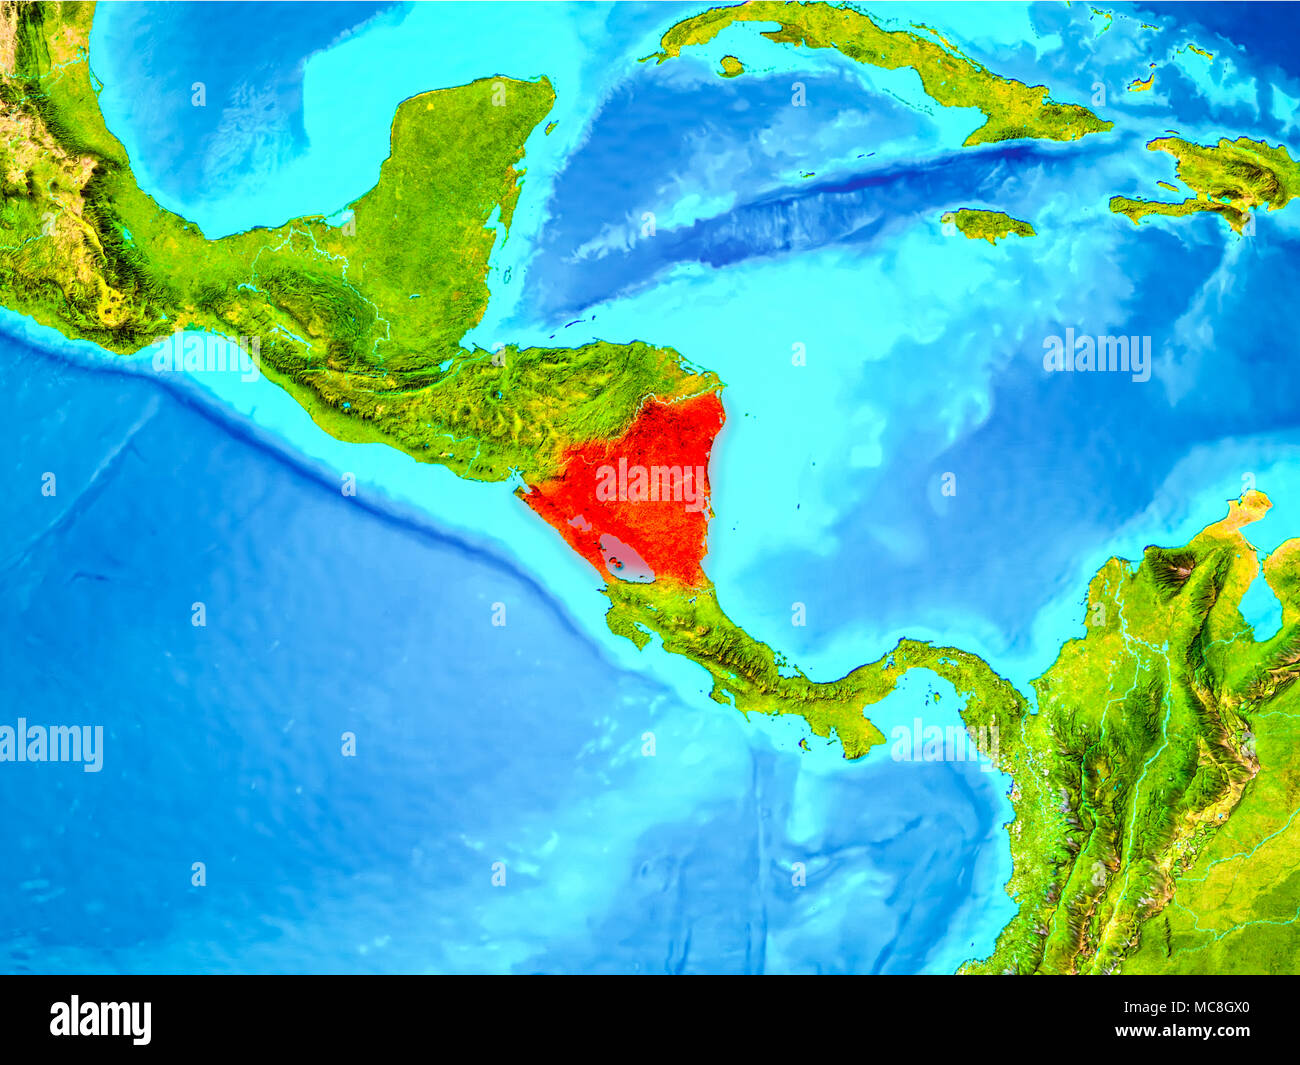 Nicaragua Highlighted In Red On Planet Earth 3d Illustration Elements Of This Image Furnished By Nasa Stock Photo Alamy